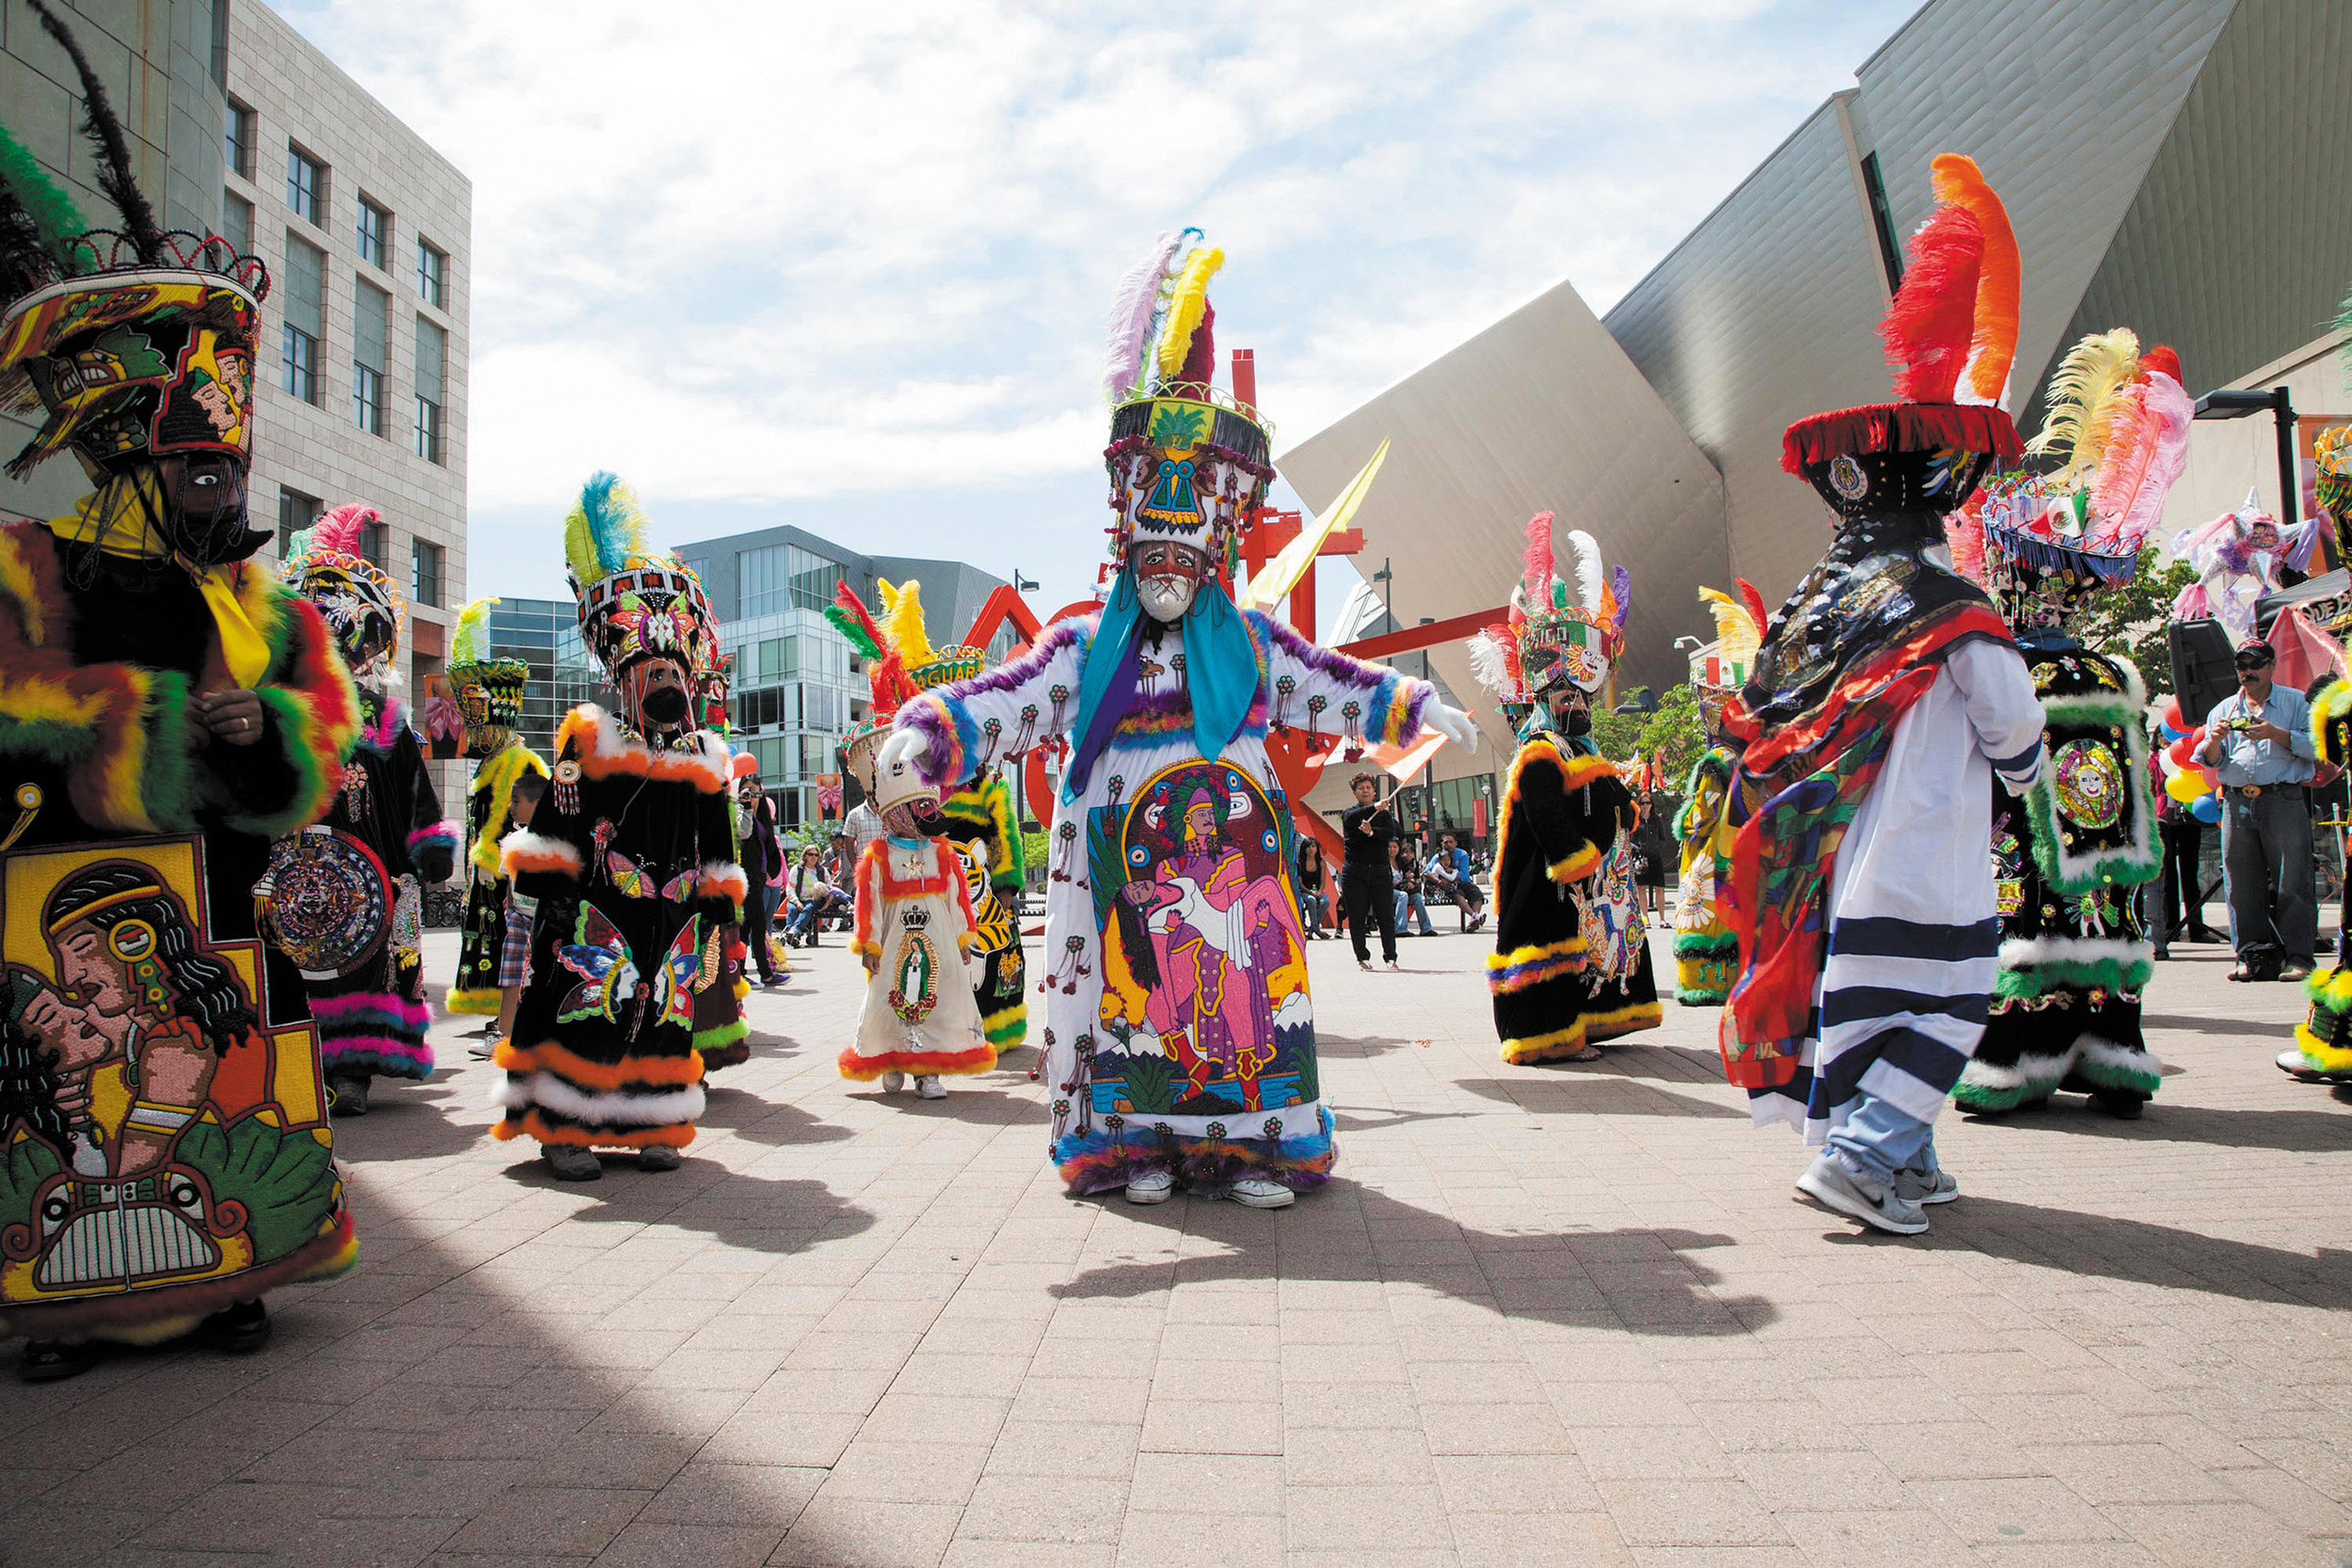 El Dia del Nino (Day of the Child) dancers will perform on Acoma Plaza, by the Denver Art Museum, in an event scheduled for 12 to 4 p.m. April 27.